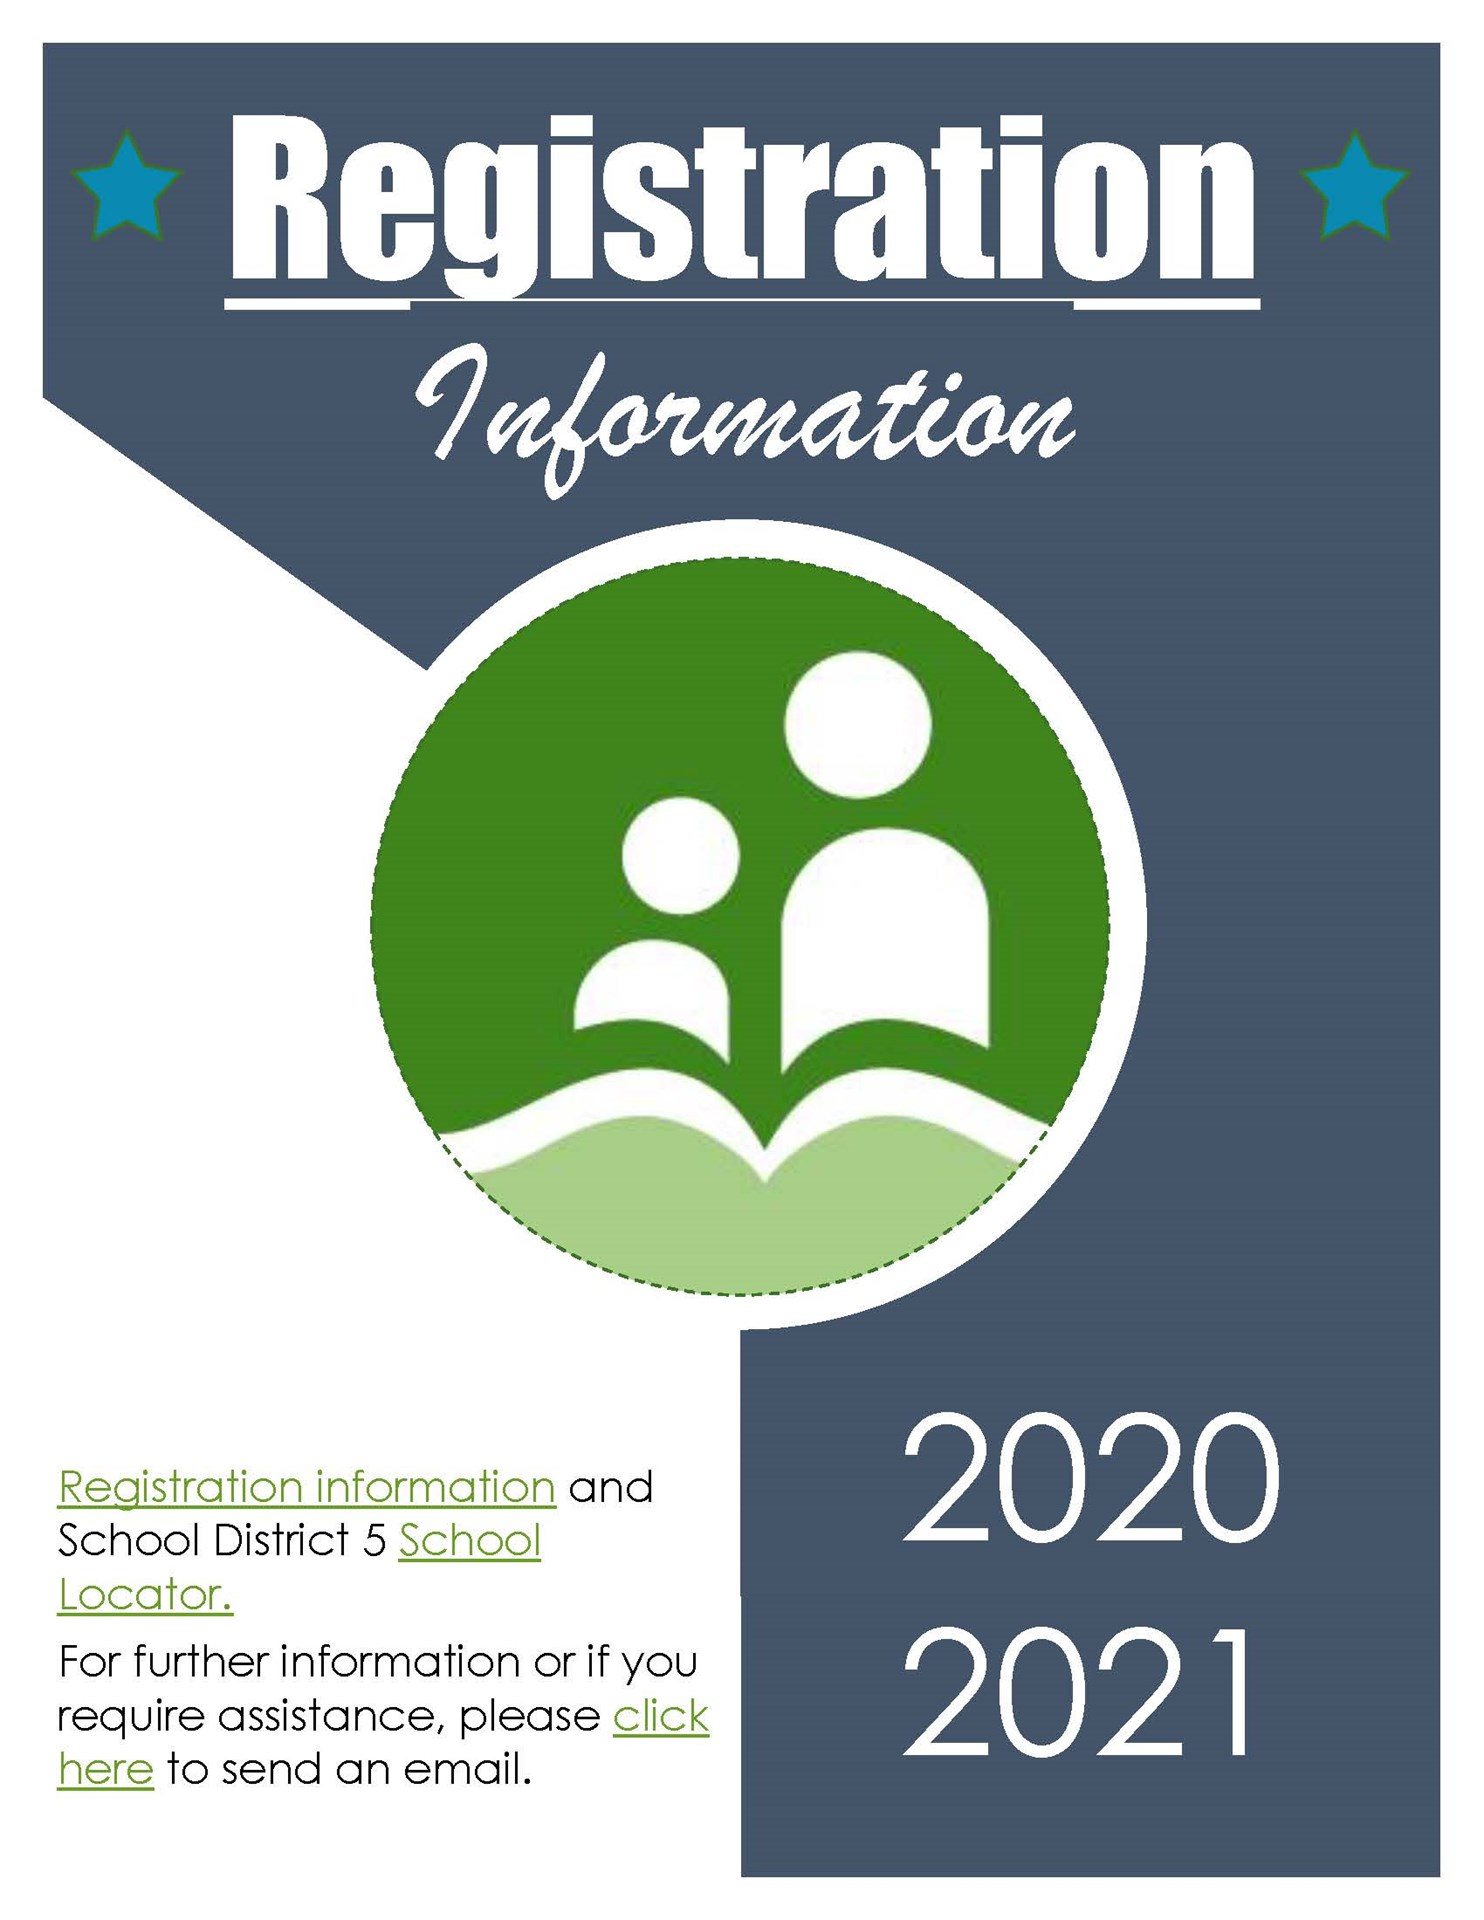 Looking for Registration Information?